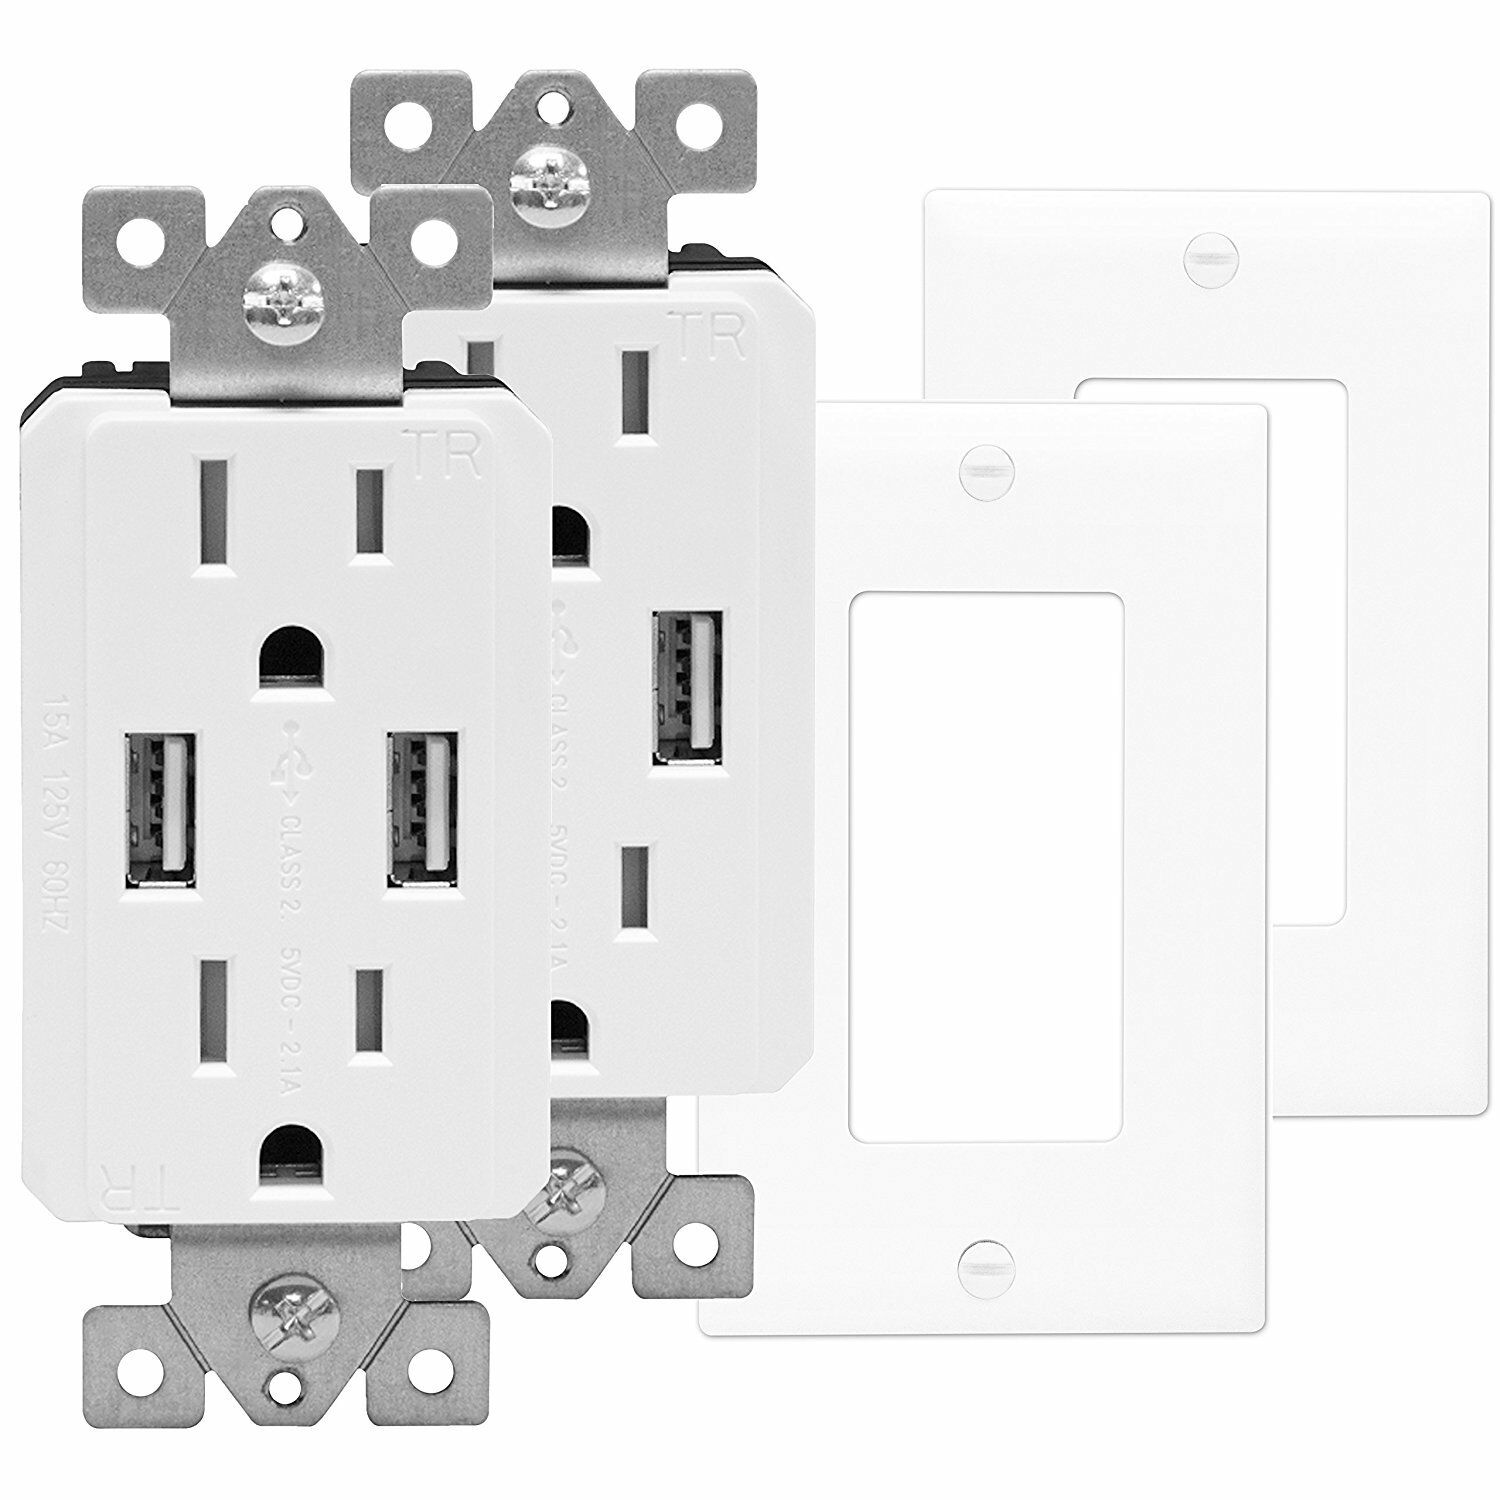 Blank Switch Plate Unique Brushed Stainless Steel Blank Outlet Cover Switch Wall Plates 1 2 Design Ideas